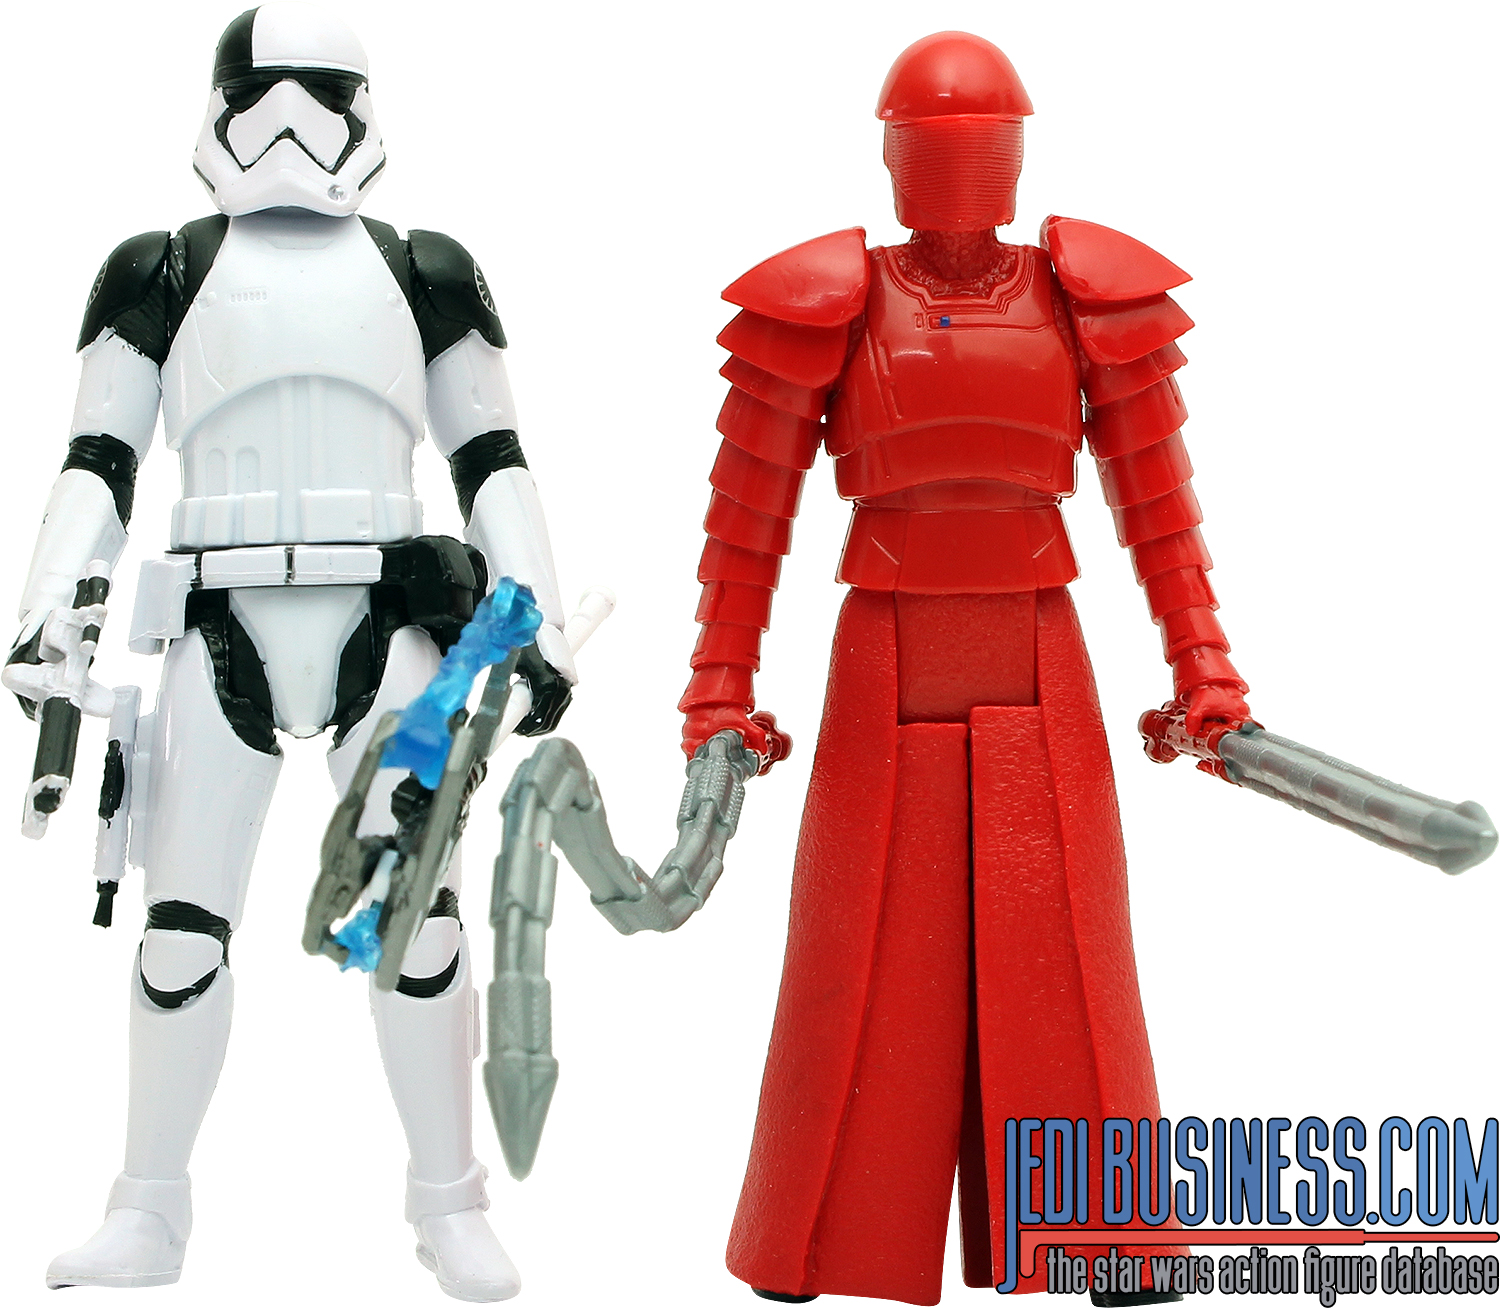 Stormtrooper Executioner, Force Link Starter Set #2